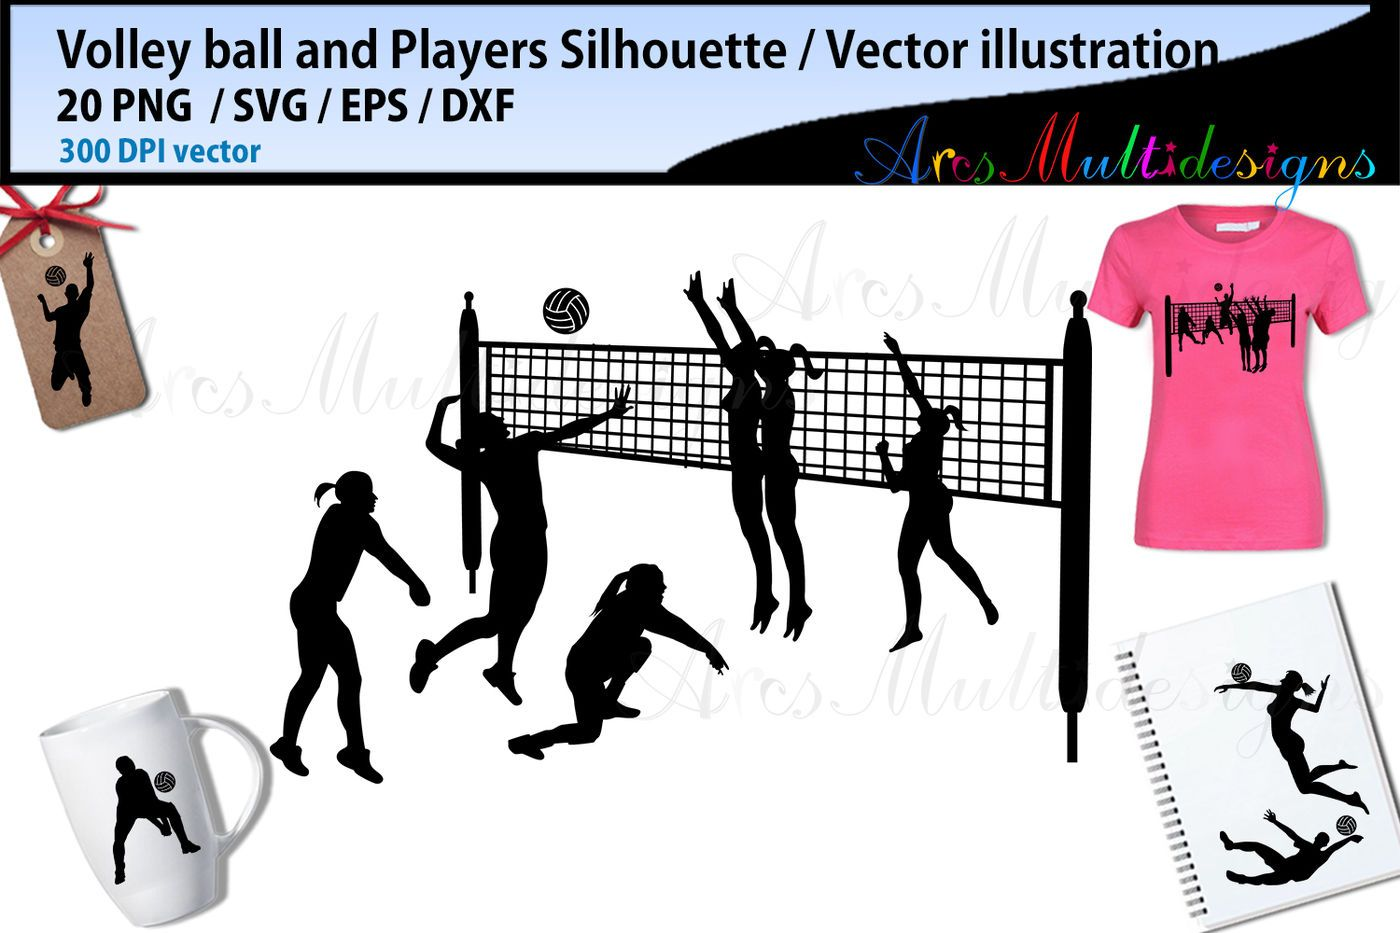 Volley Ball Volley Ball Silhouette Volley Ball Players Vector By Arcsmultidesignsshop Thehungryjpeg Com Volley Sponsored Silhouette Volley Ball Ad Nel 2020